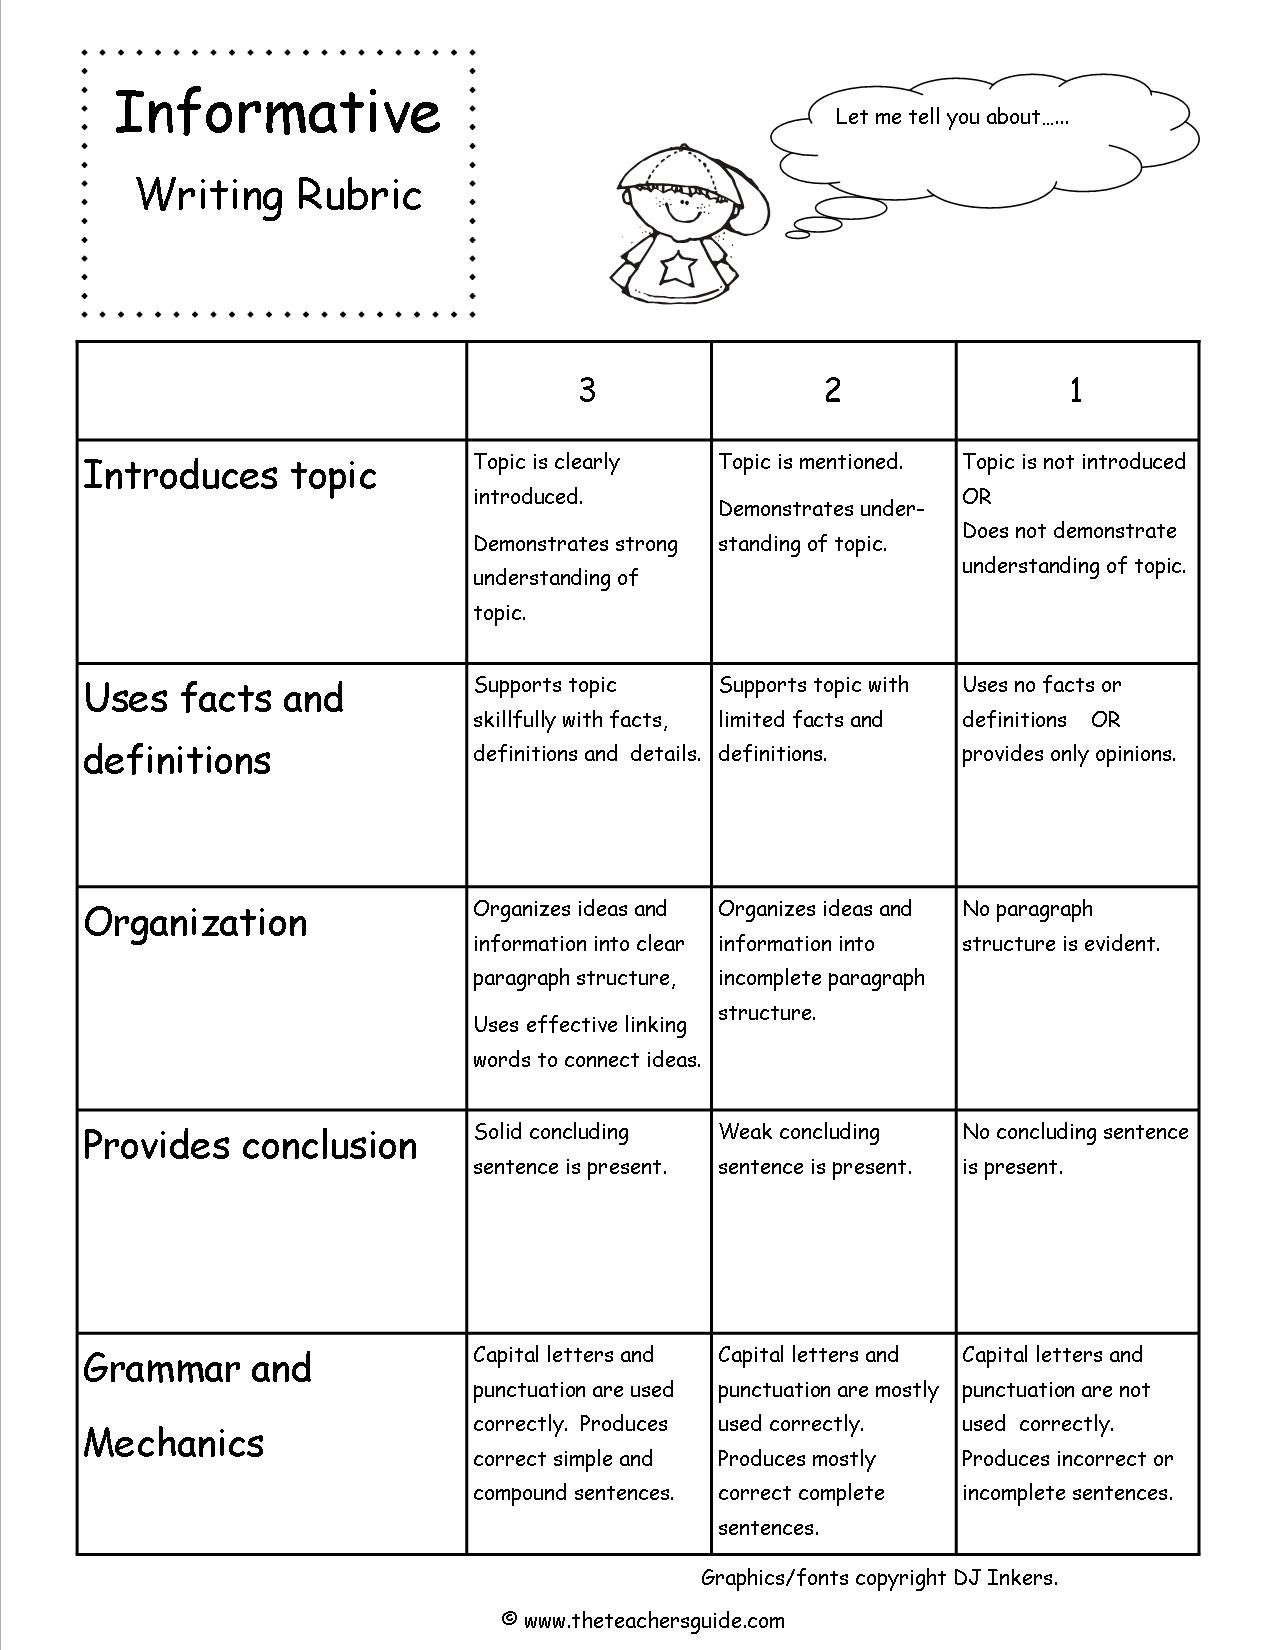 010 Rubrics For Essay Breathtaking Sample Questions Scoring Writing High School Full